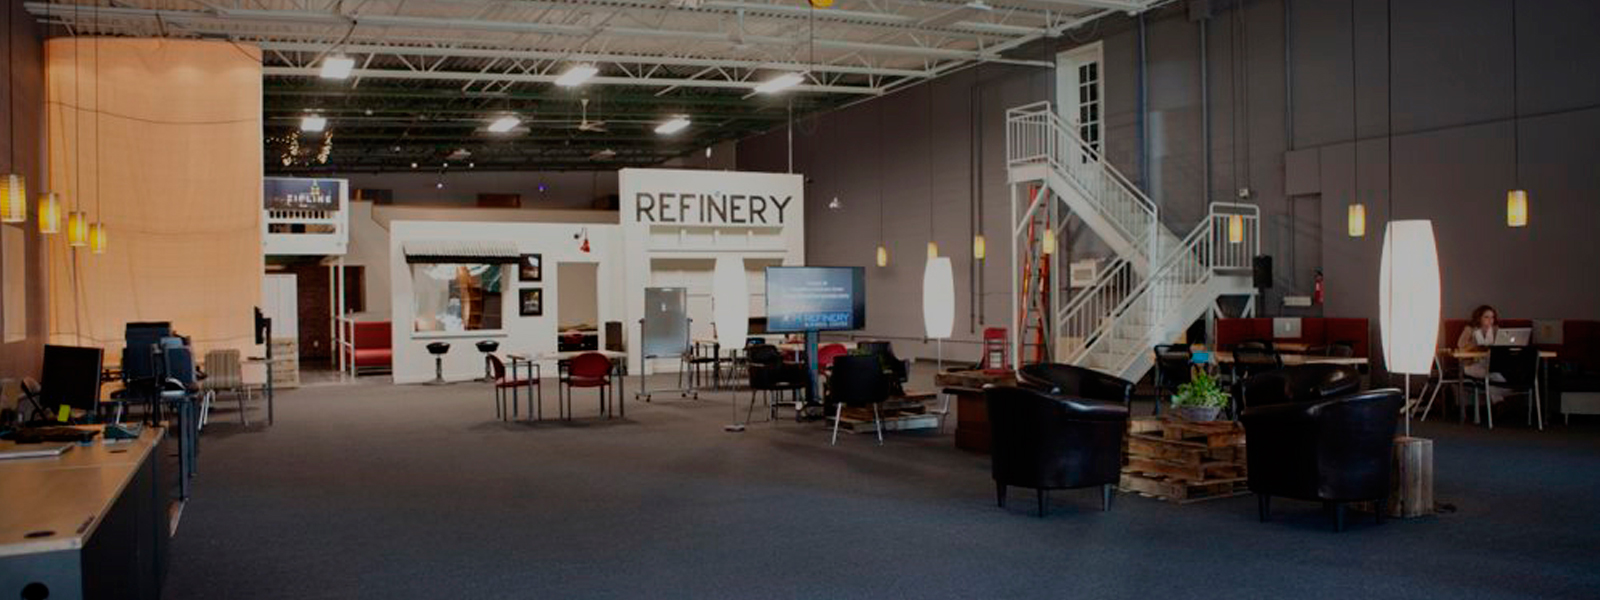 The Refinery Business Center